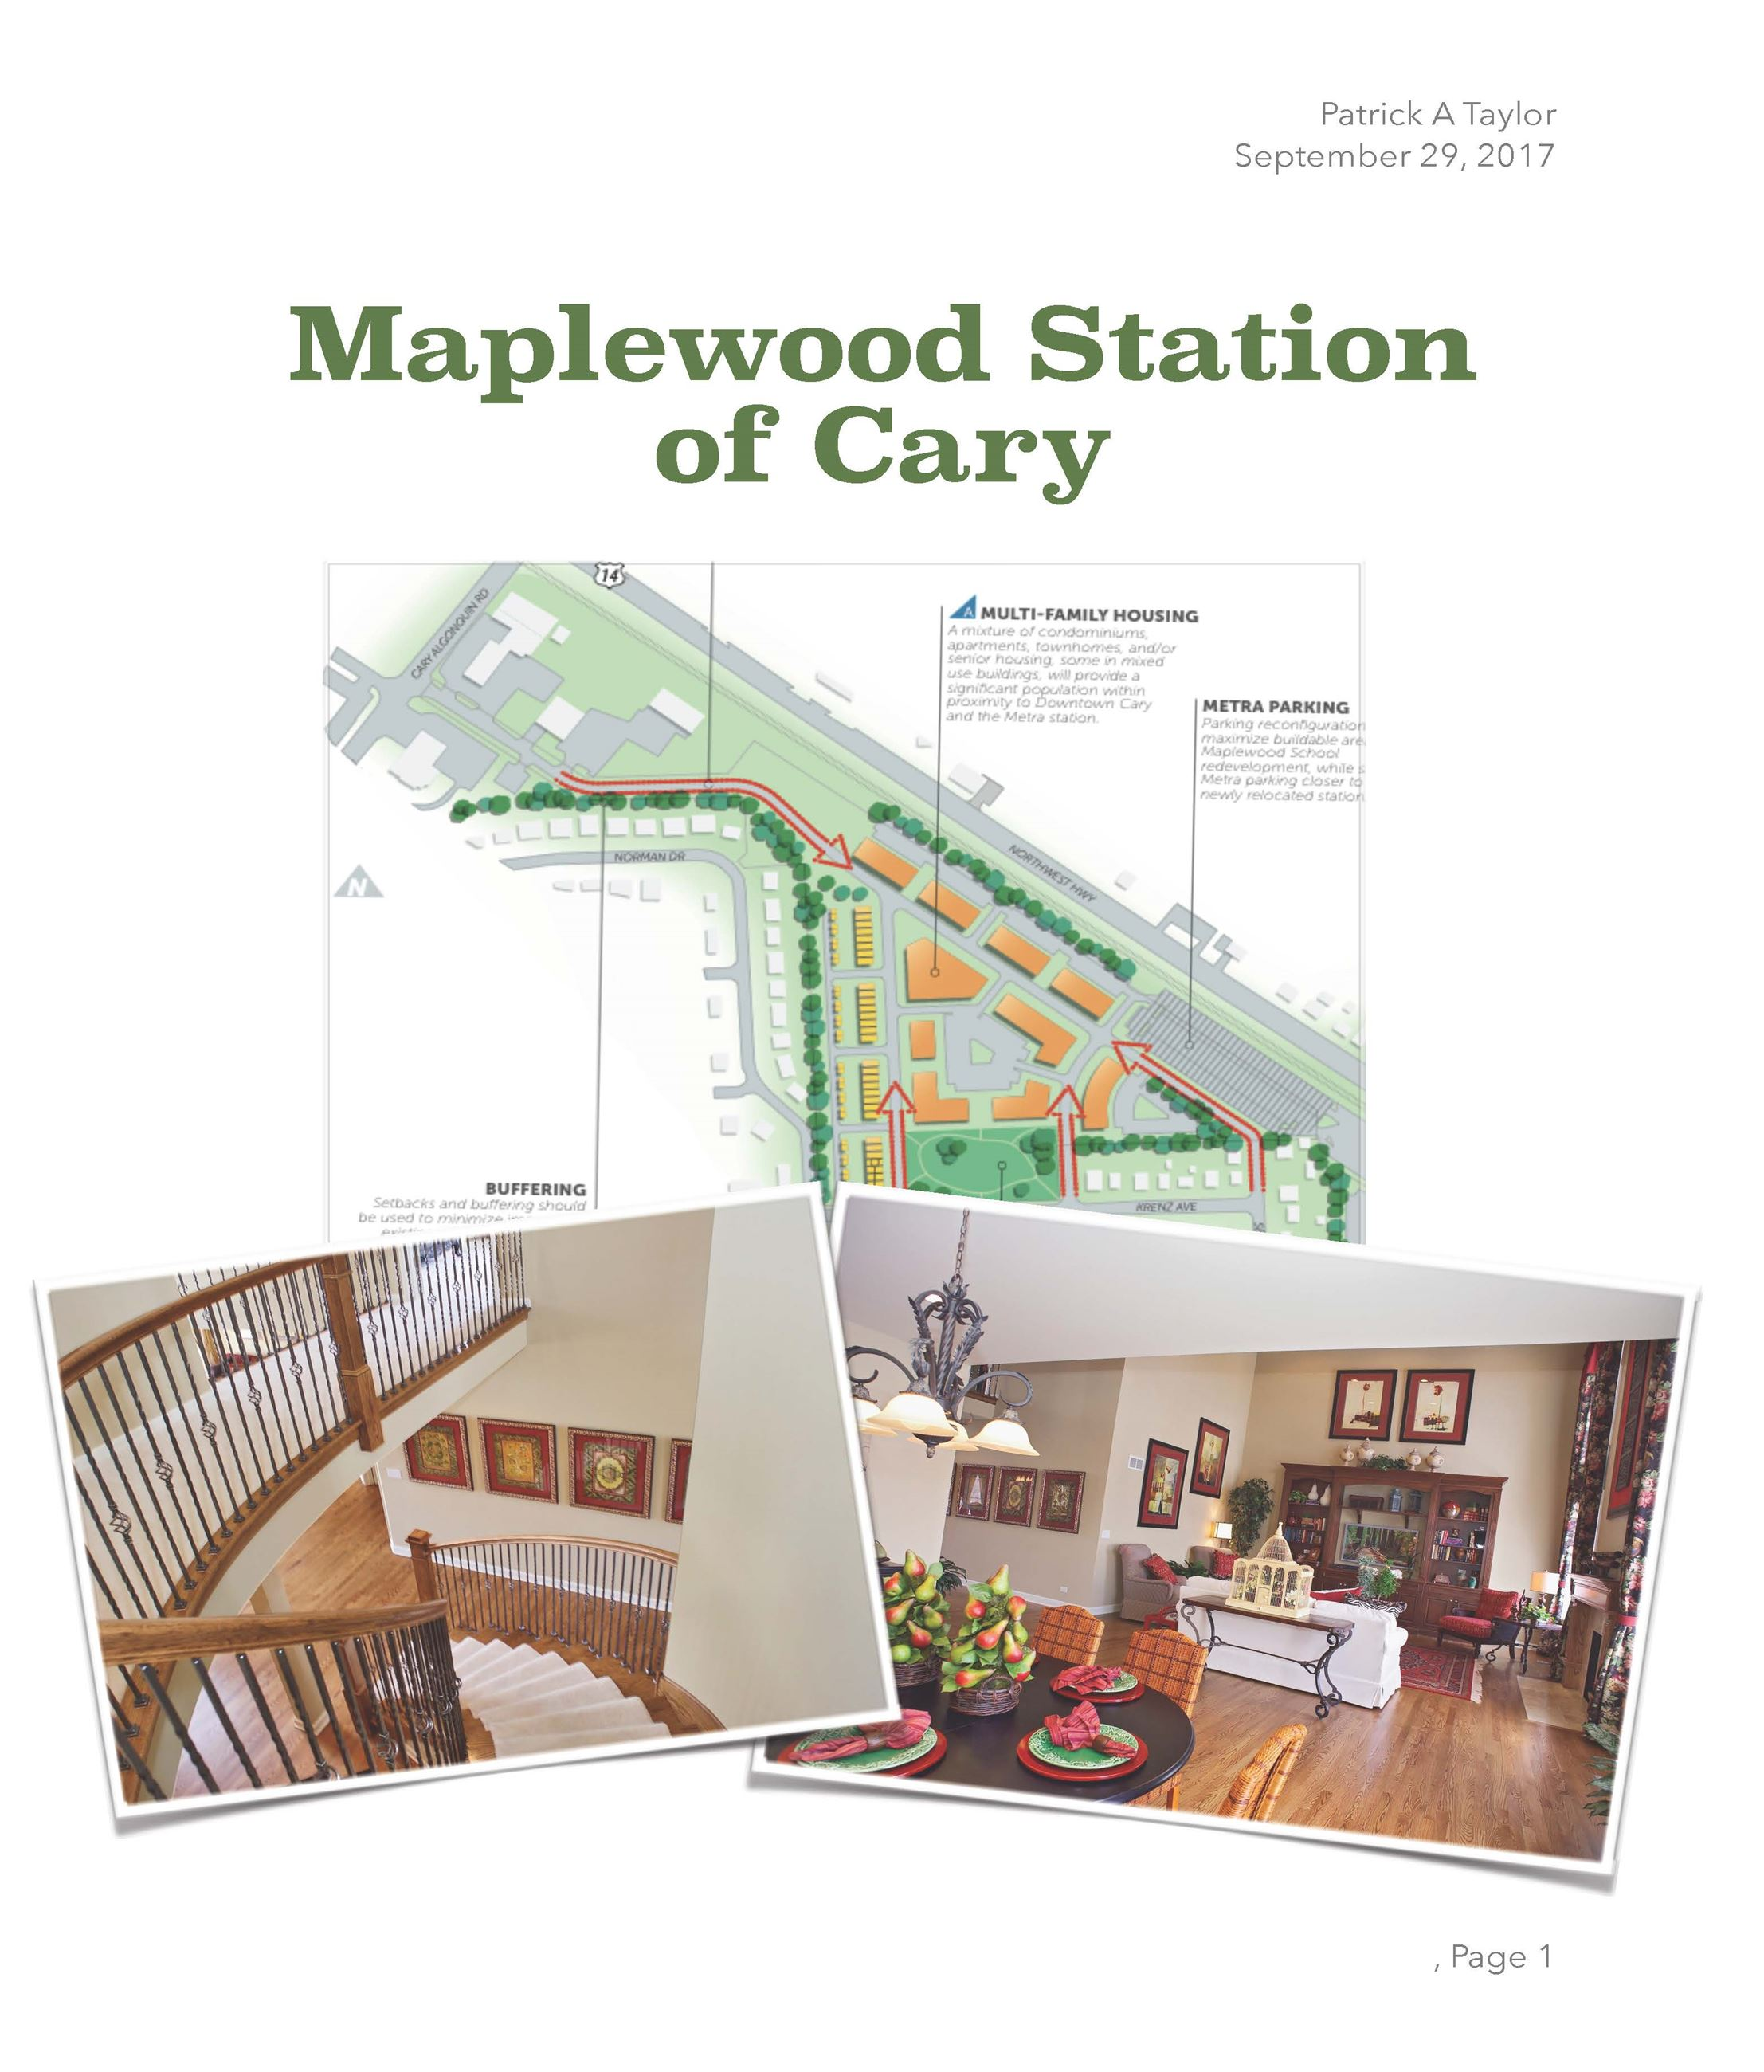 Maplewood Station Presentation 10.03.17_Page_1